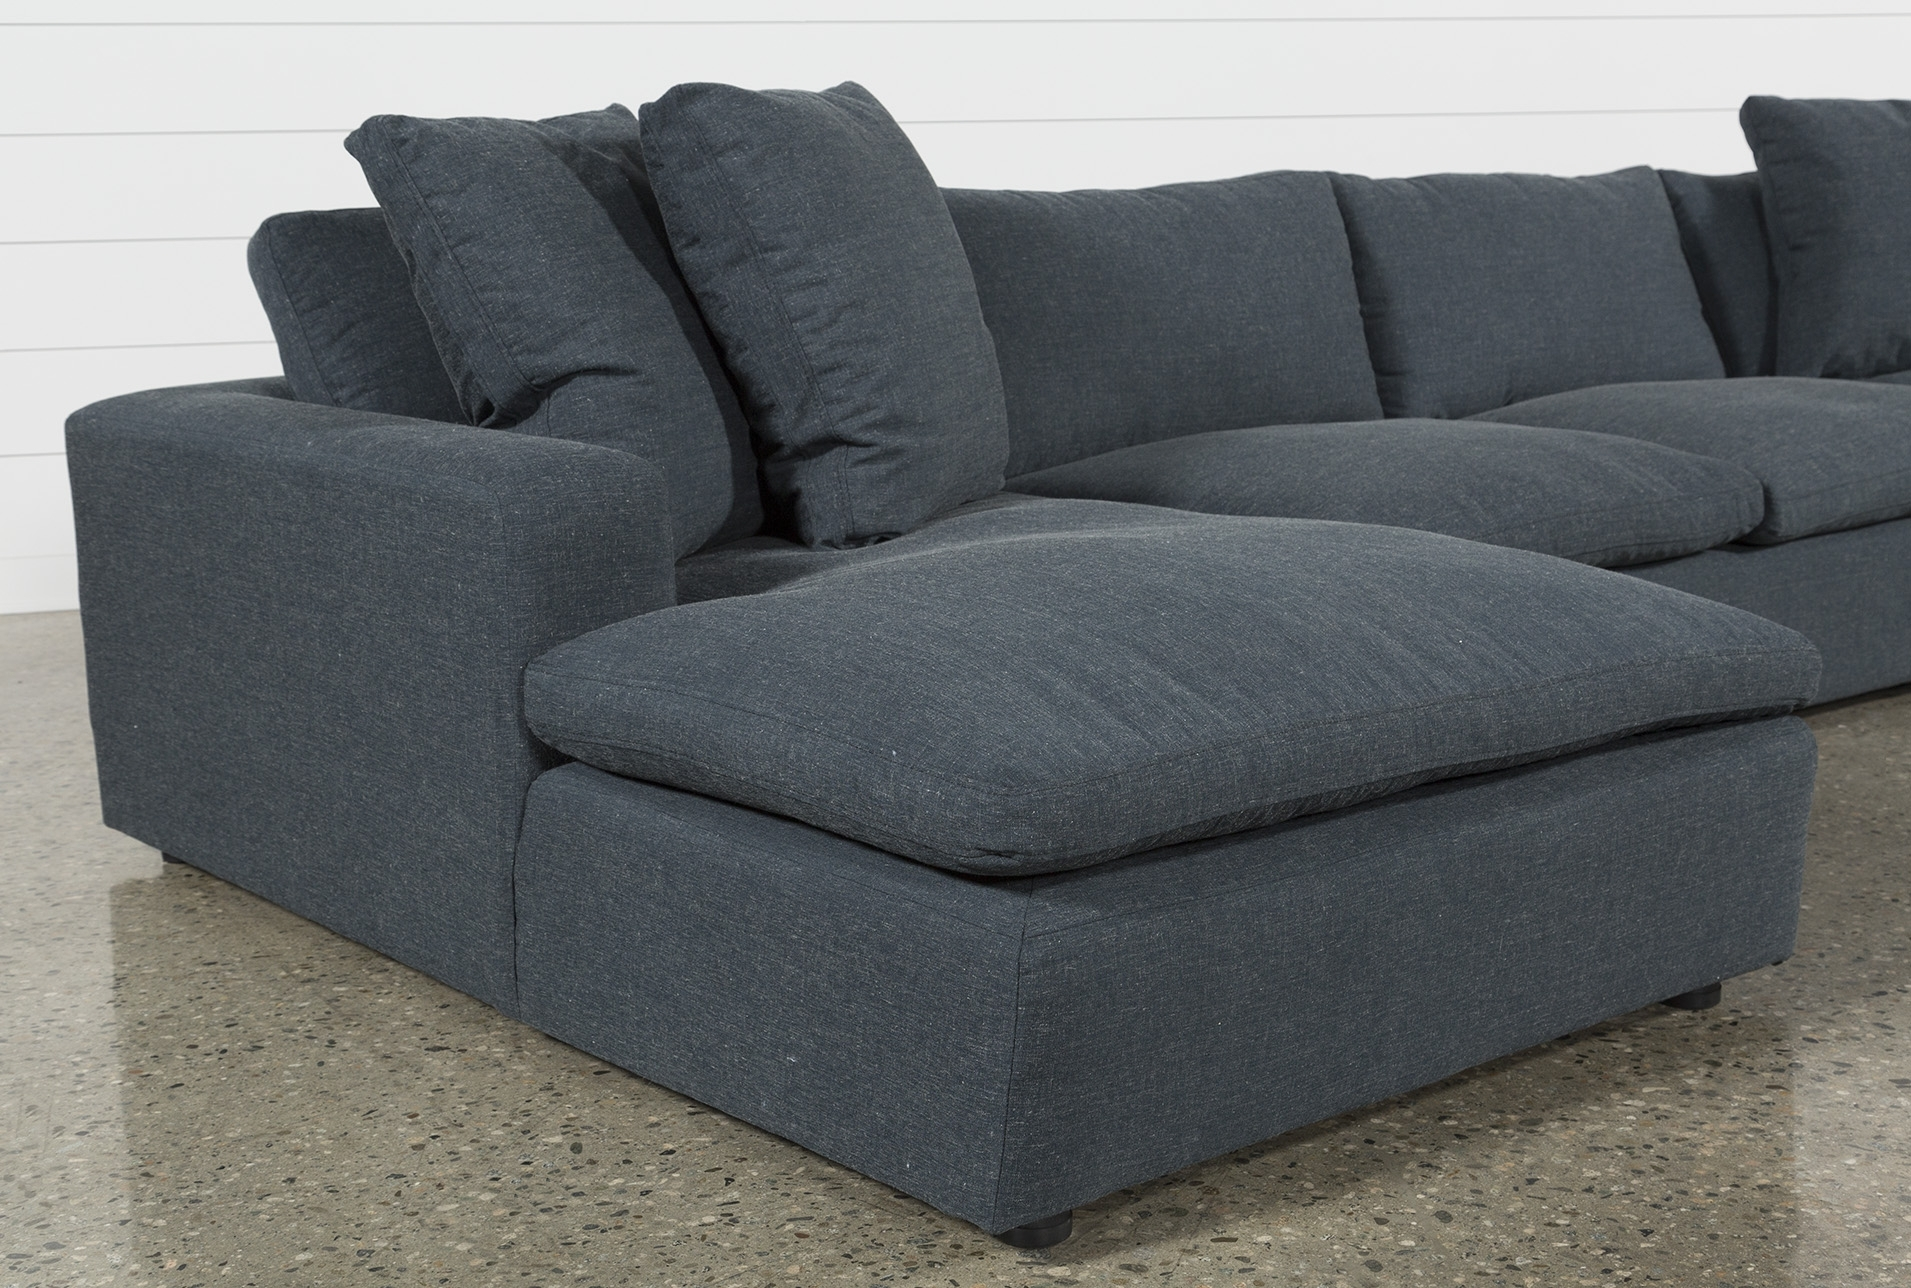 Haven Blue Steel 3 Piece Sectional | Products | Pinterest | Steel with regard to Haven Blue Steel 3 Piece Sectionals (Image 14 of 30)